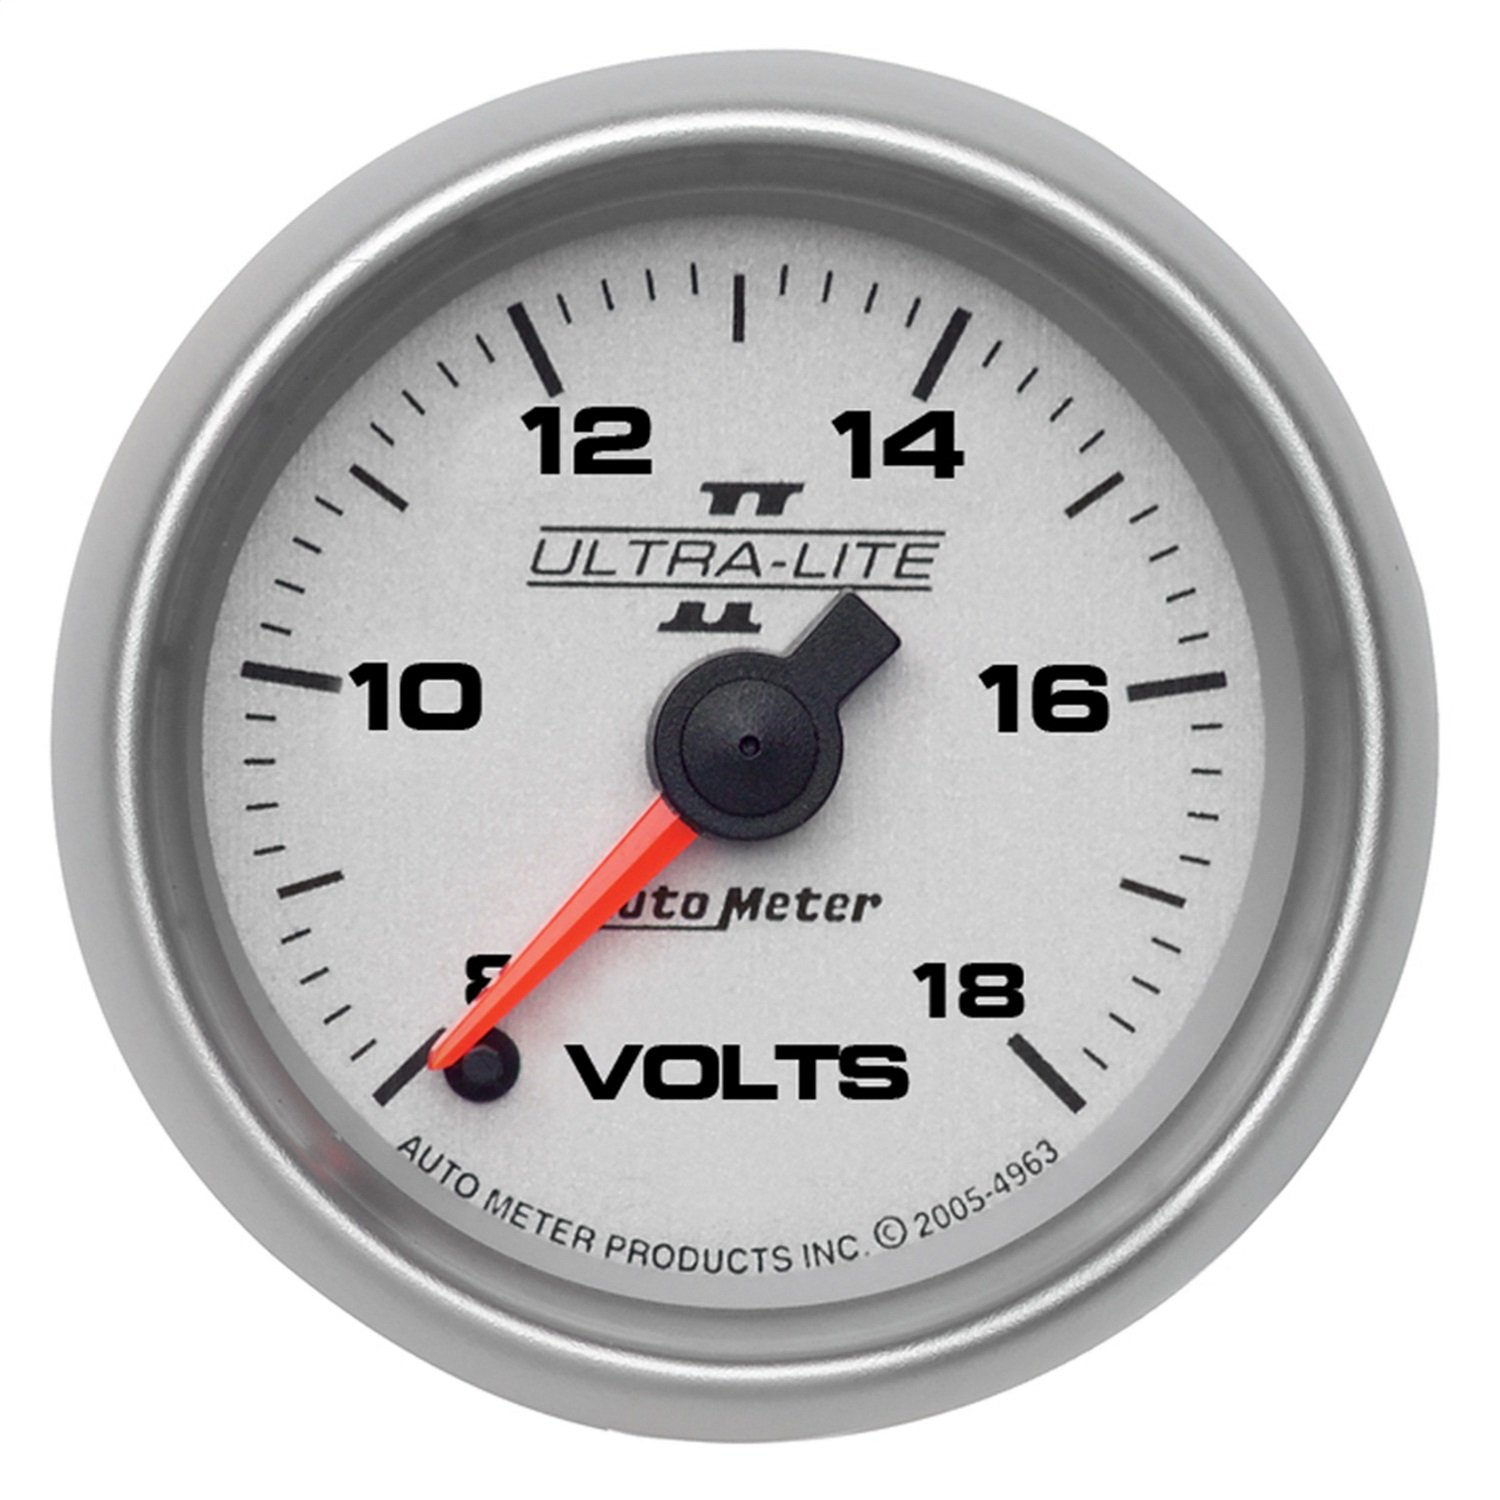 Auto Meter 4991 Ultra-Lite II 2-1/16'' 8-18V Full Sweep Electric Voltmeter